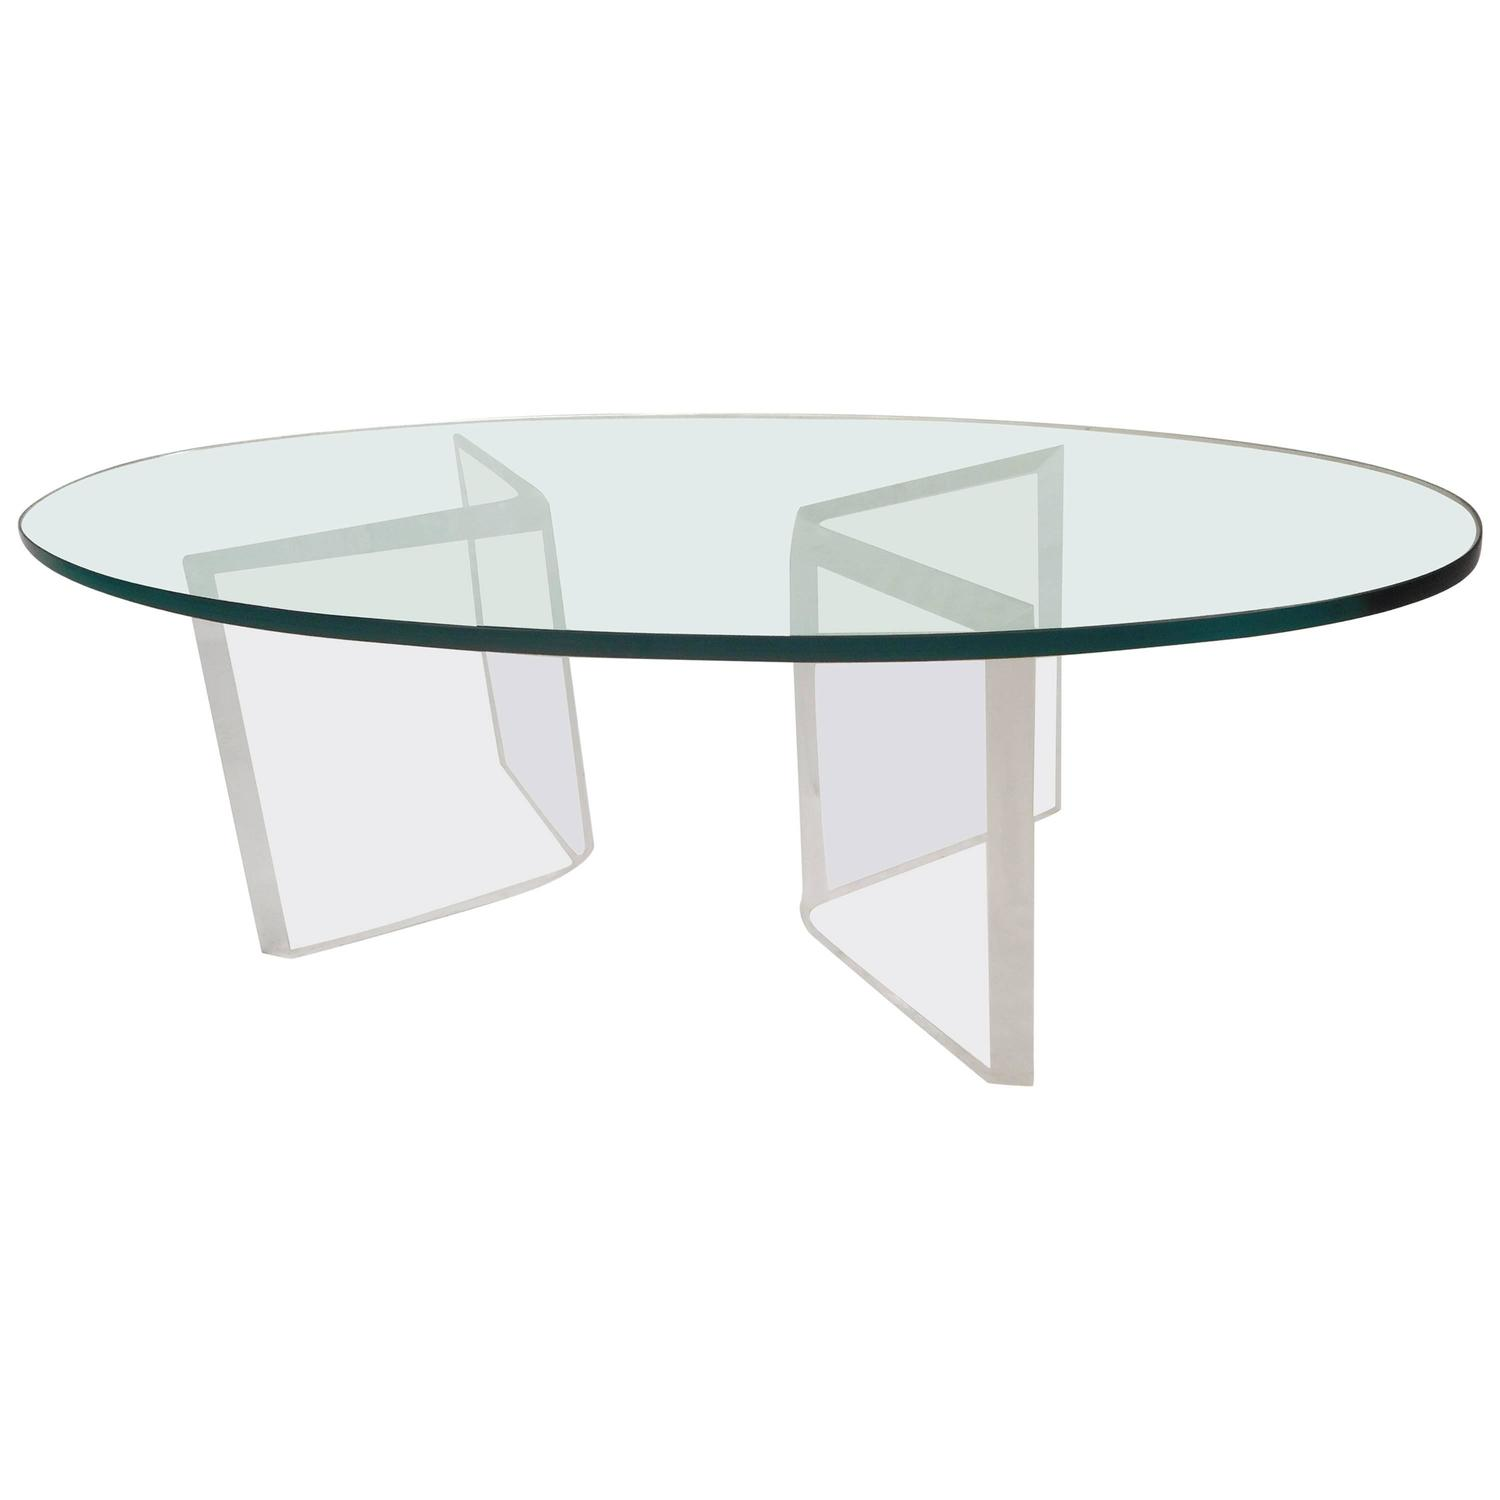 Mid Century Modern Oval Glass and Lucite Coffee Table For Sale at